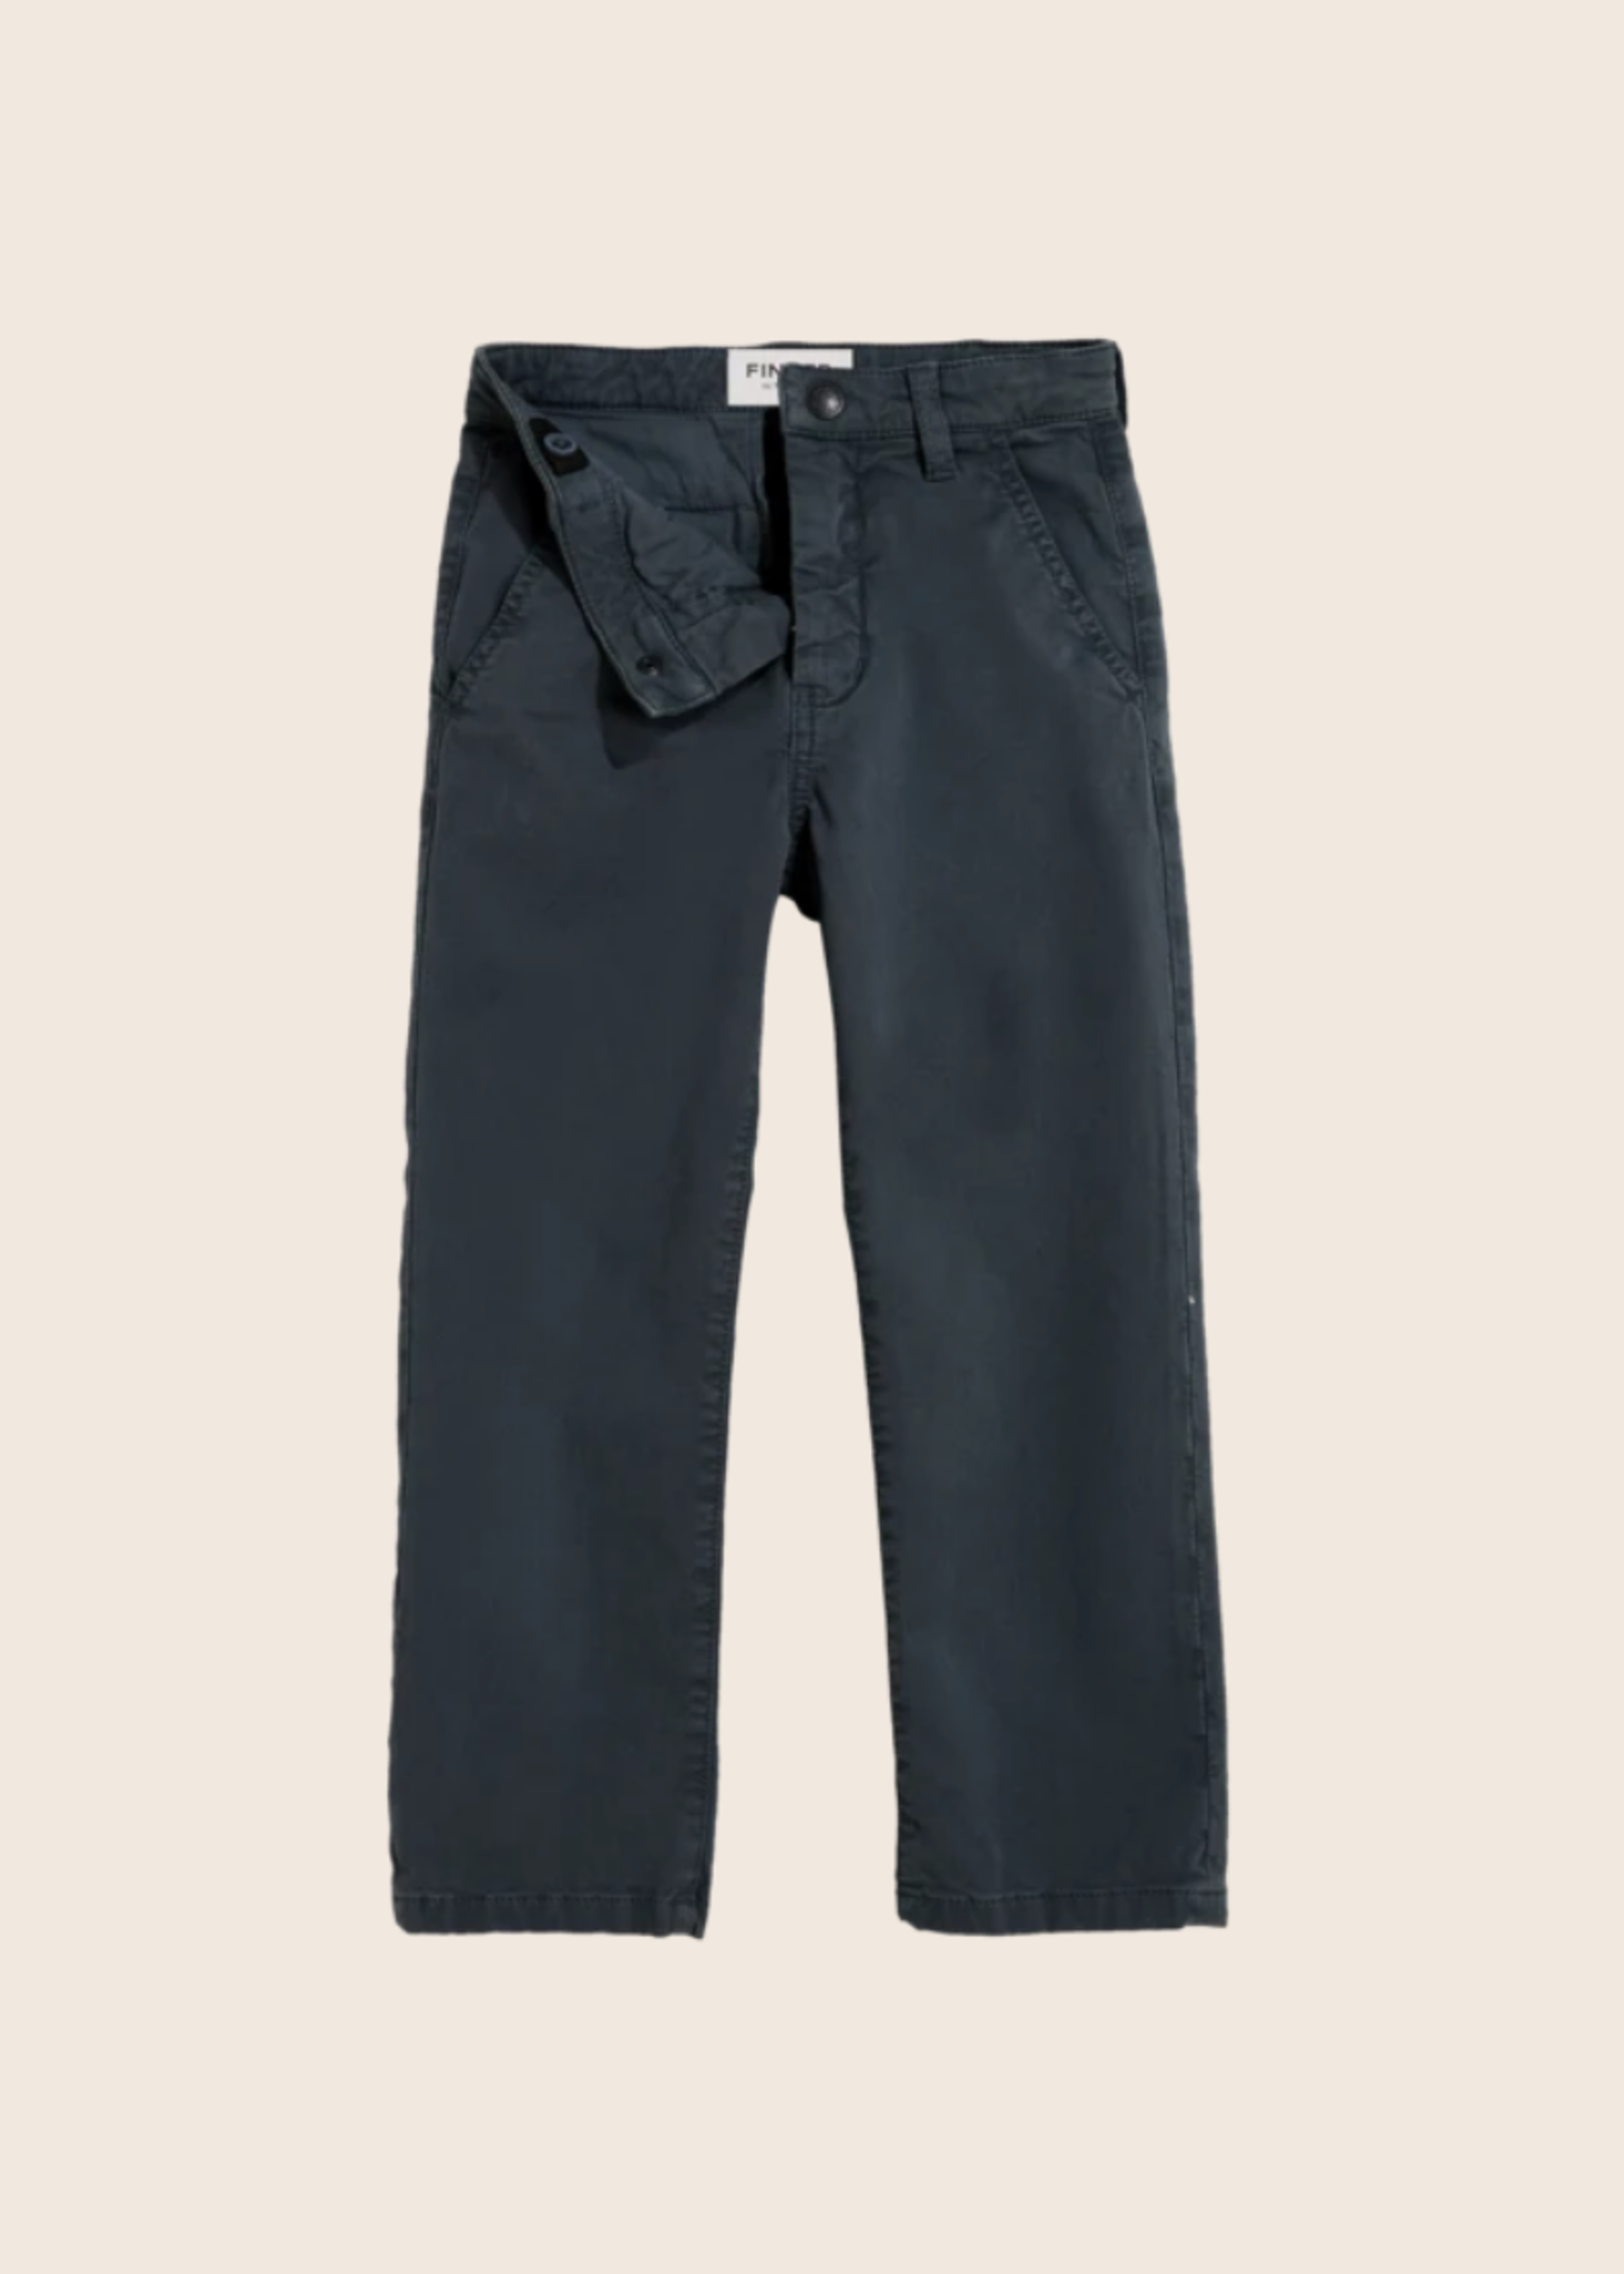 FINGER IN THE NOSE PORTMAN Ash Black - Chino Fit Pants